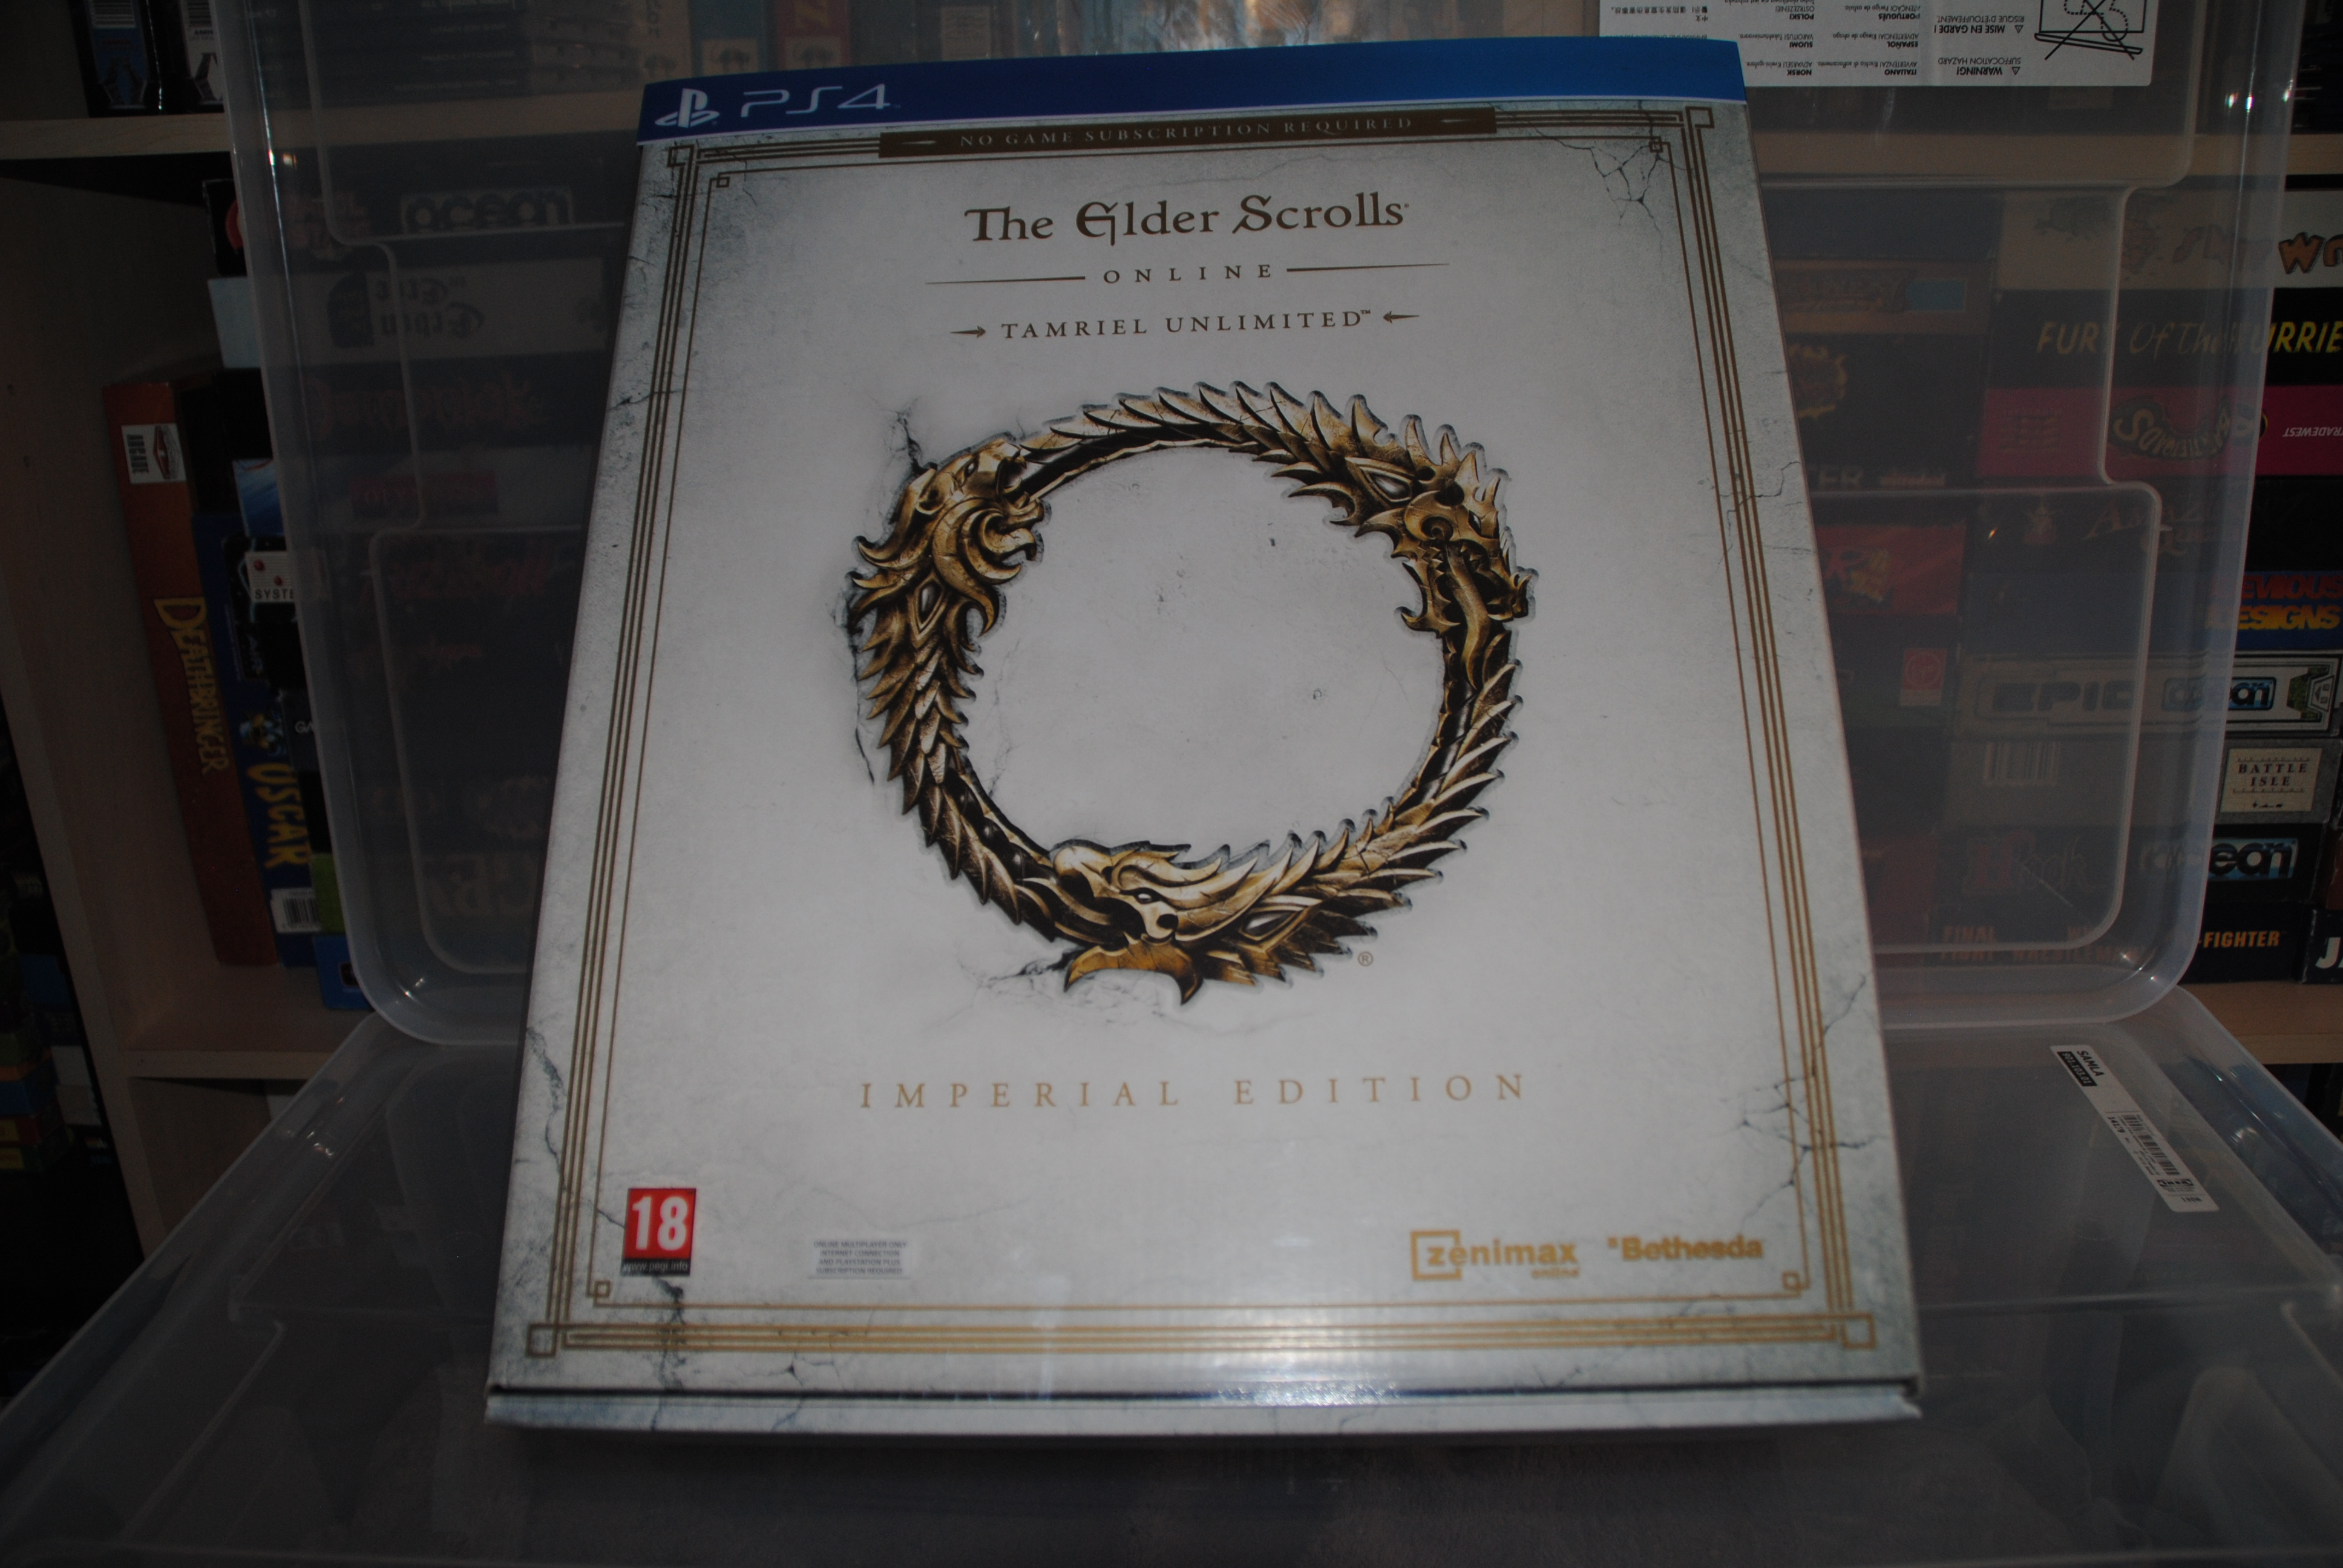 A Look At: The Elder Scrolls Online Collectible